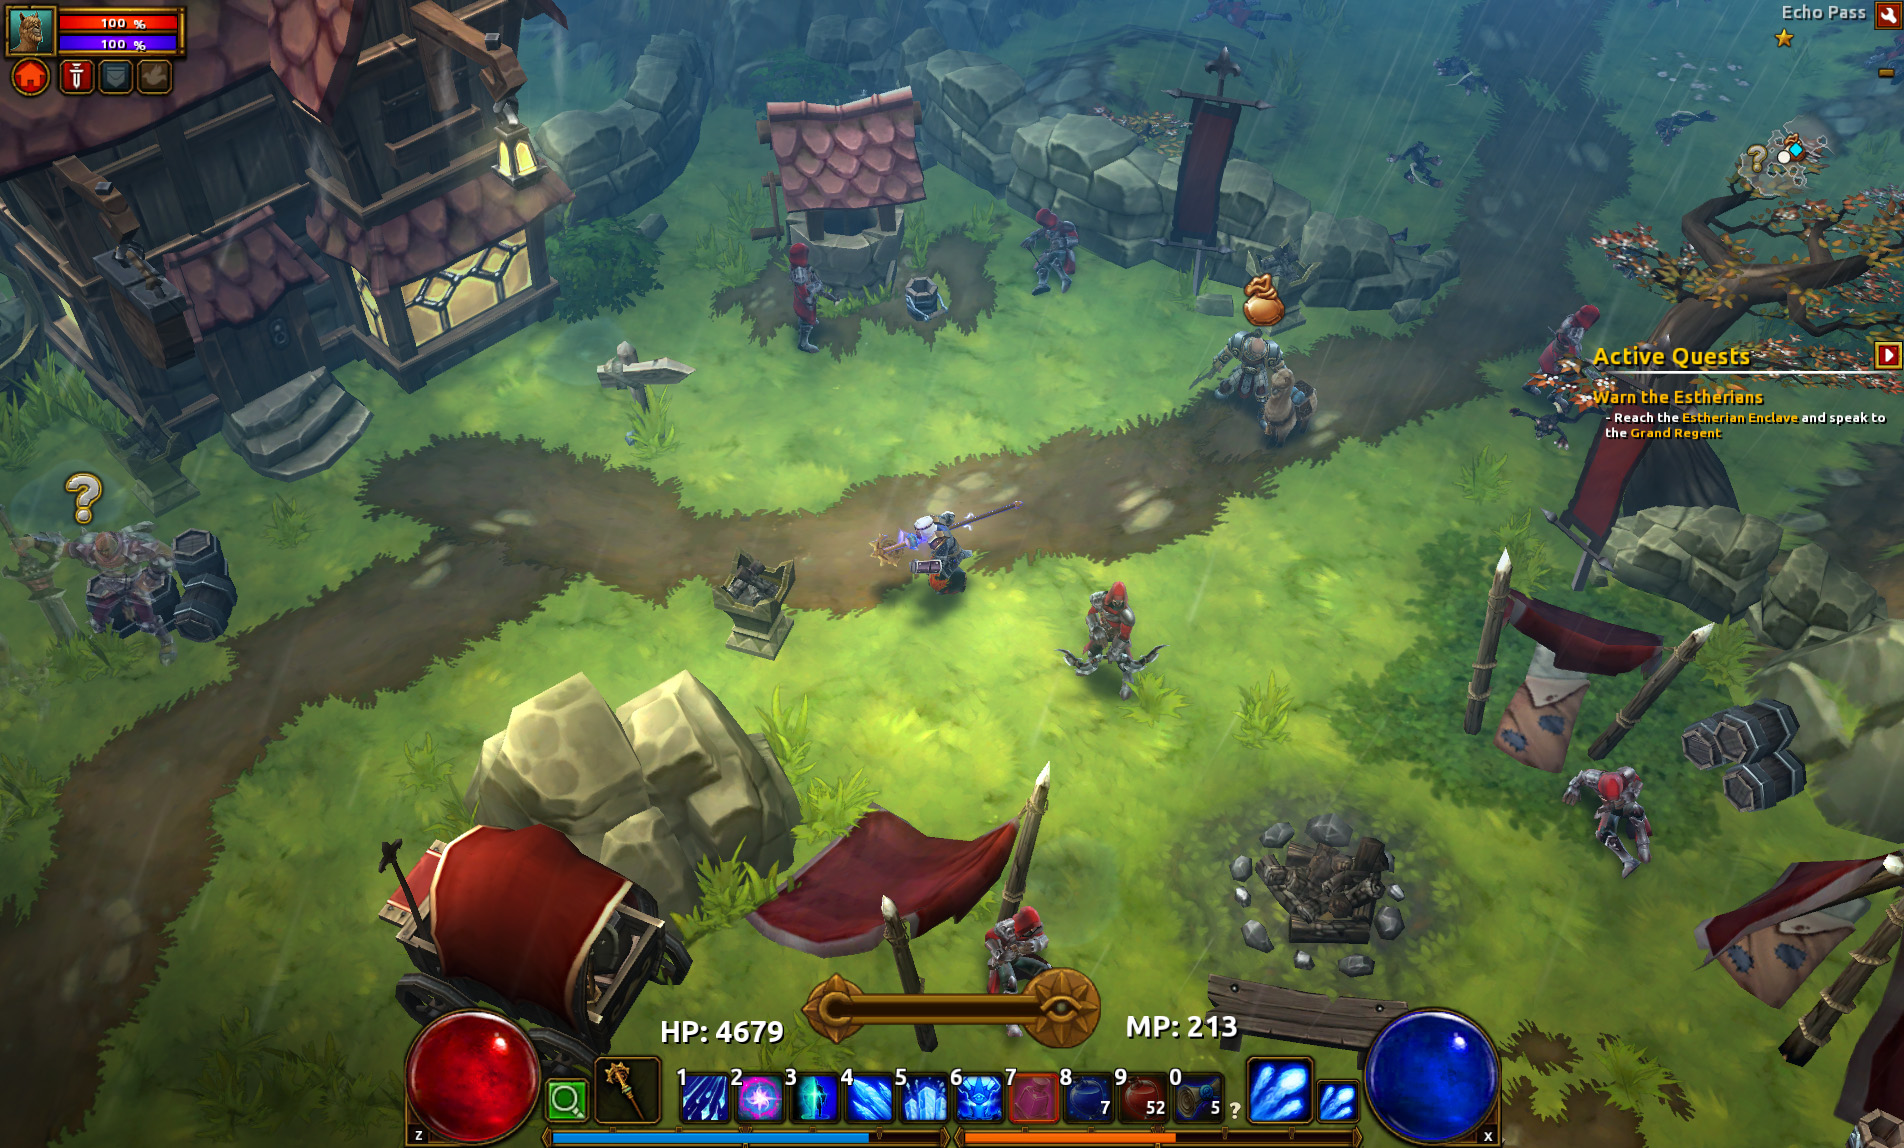 Welcome to the starter area for Torchlight 2!